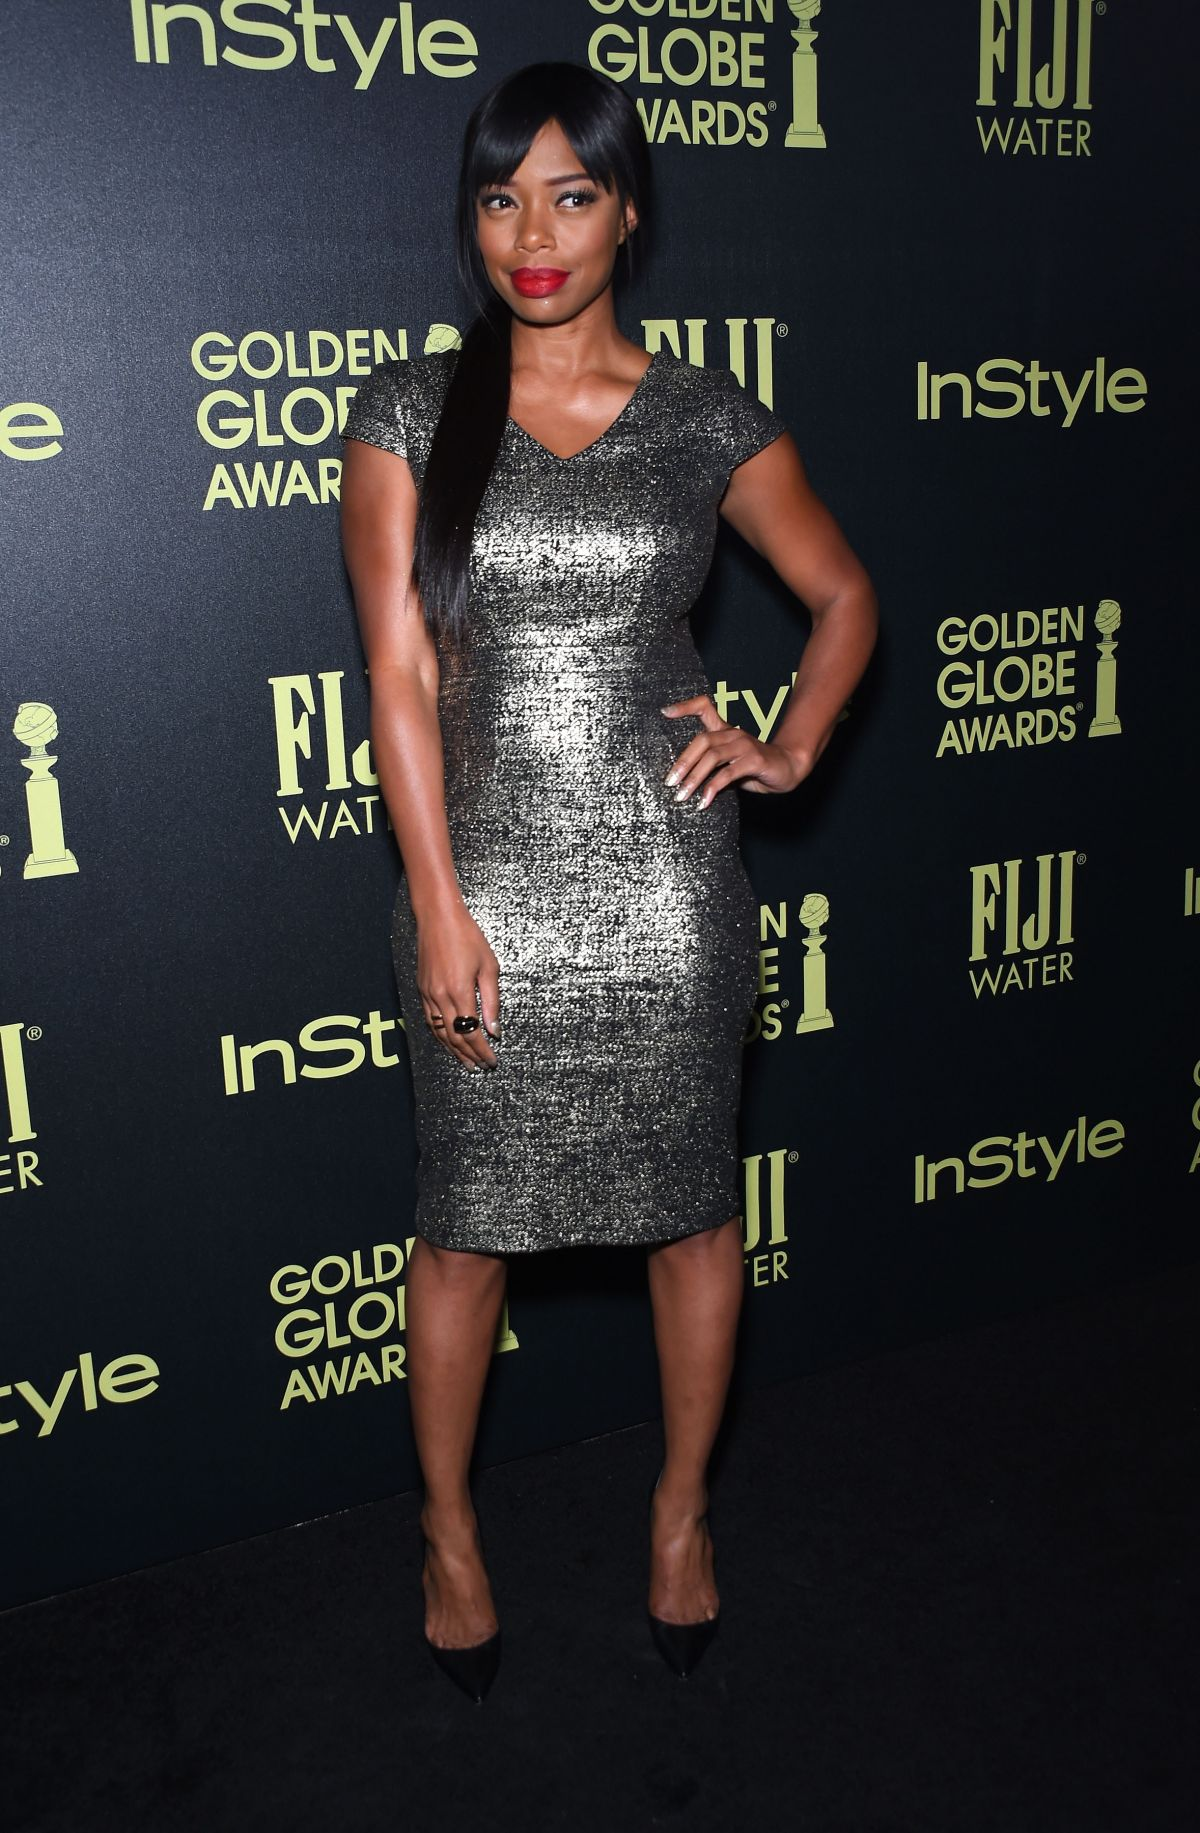 JILL MARIE JONES at hfpa and Instyle Celebrate 2016 Golden Globe Award Season in West Hollywood 11/17/2015